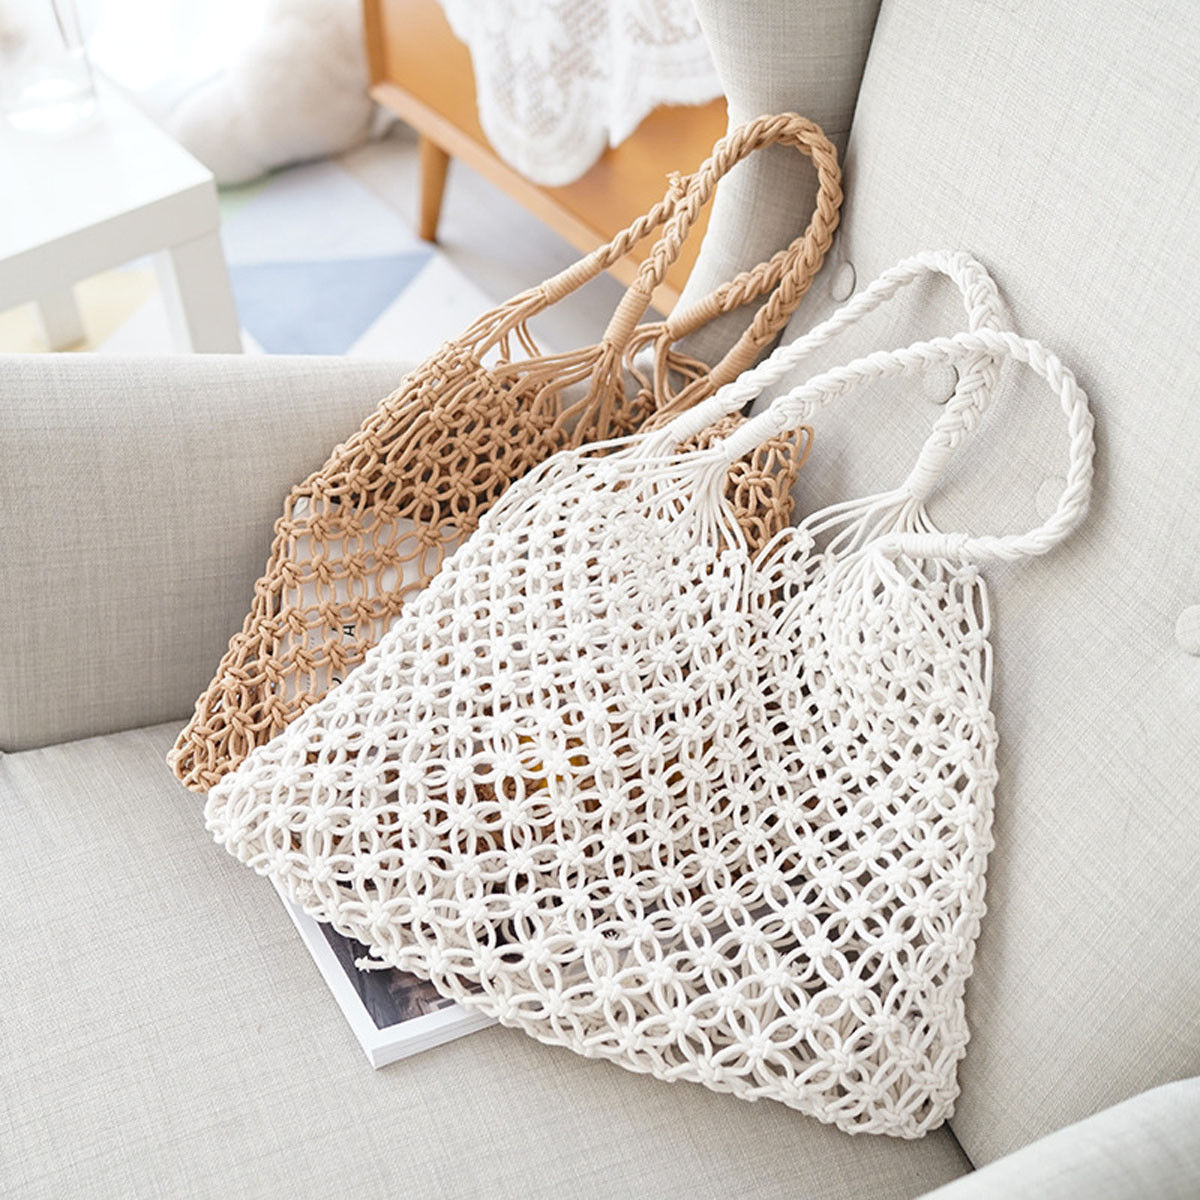 Vintage Women Bag Large Straw Bag Handmade Crochet Braid Fringed Bag Knitted Handbag Beach Bohemian Woman Shoulder Messenger Bag fringed crochet tank top